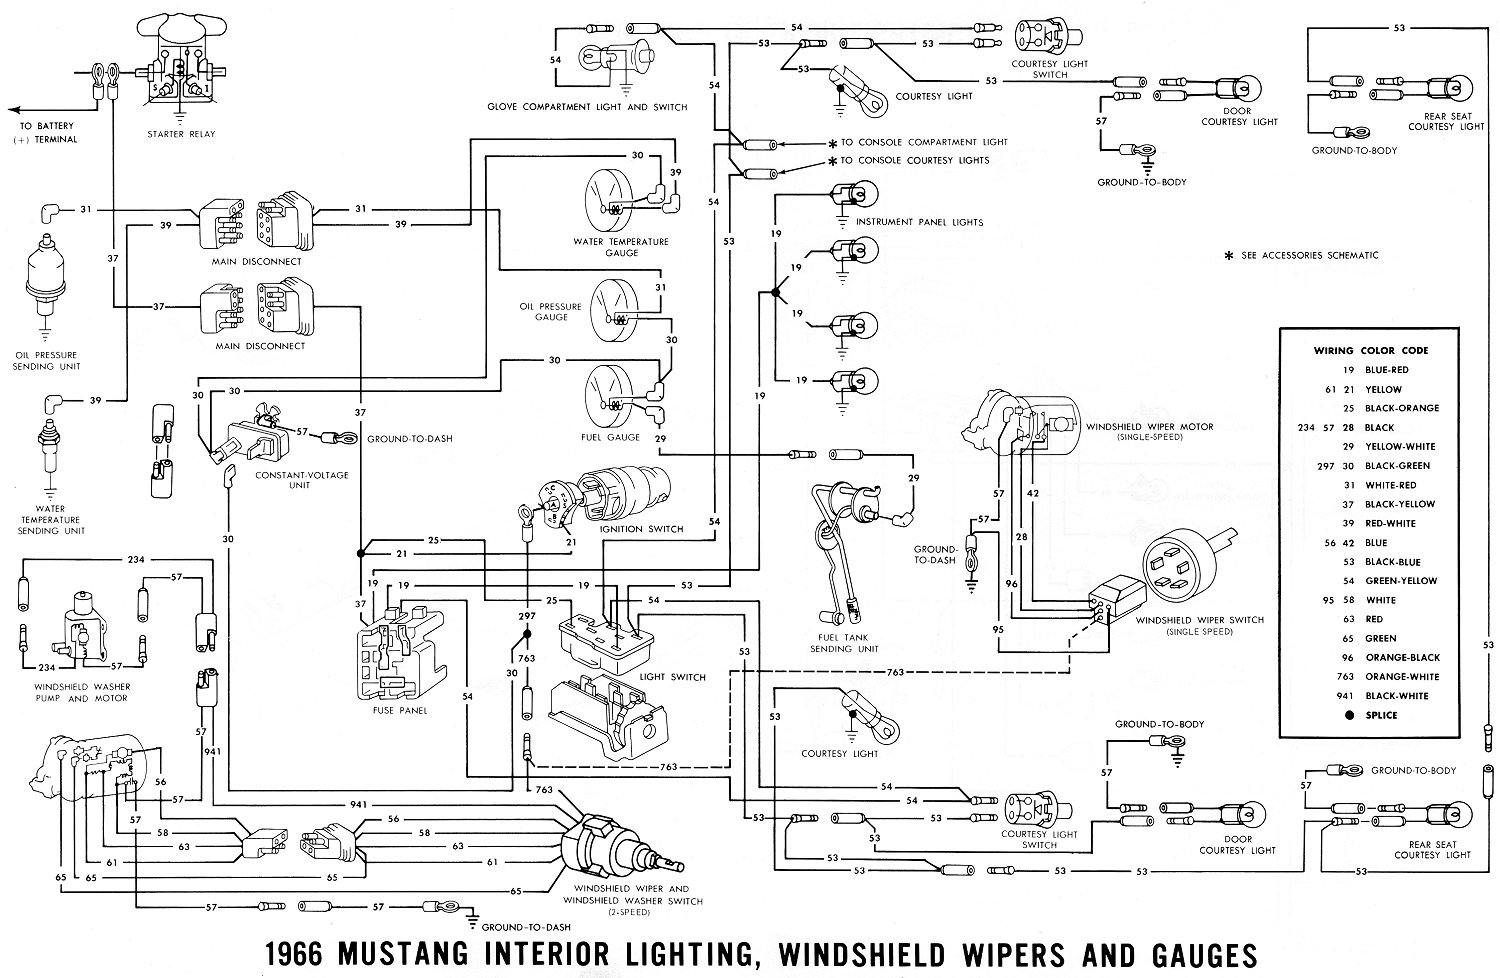 66inter1 1966 mustang wiring diagrams average joe restoration 1966 mustang wiring diagrams at webbmarketing.co